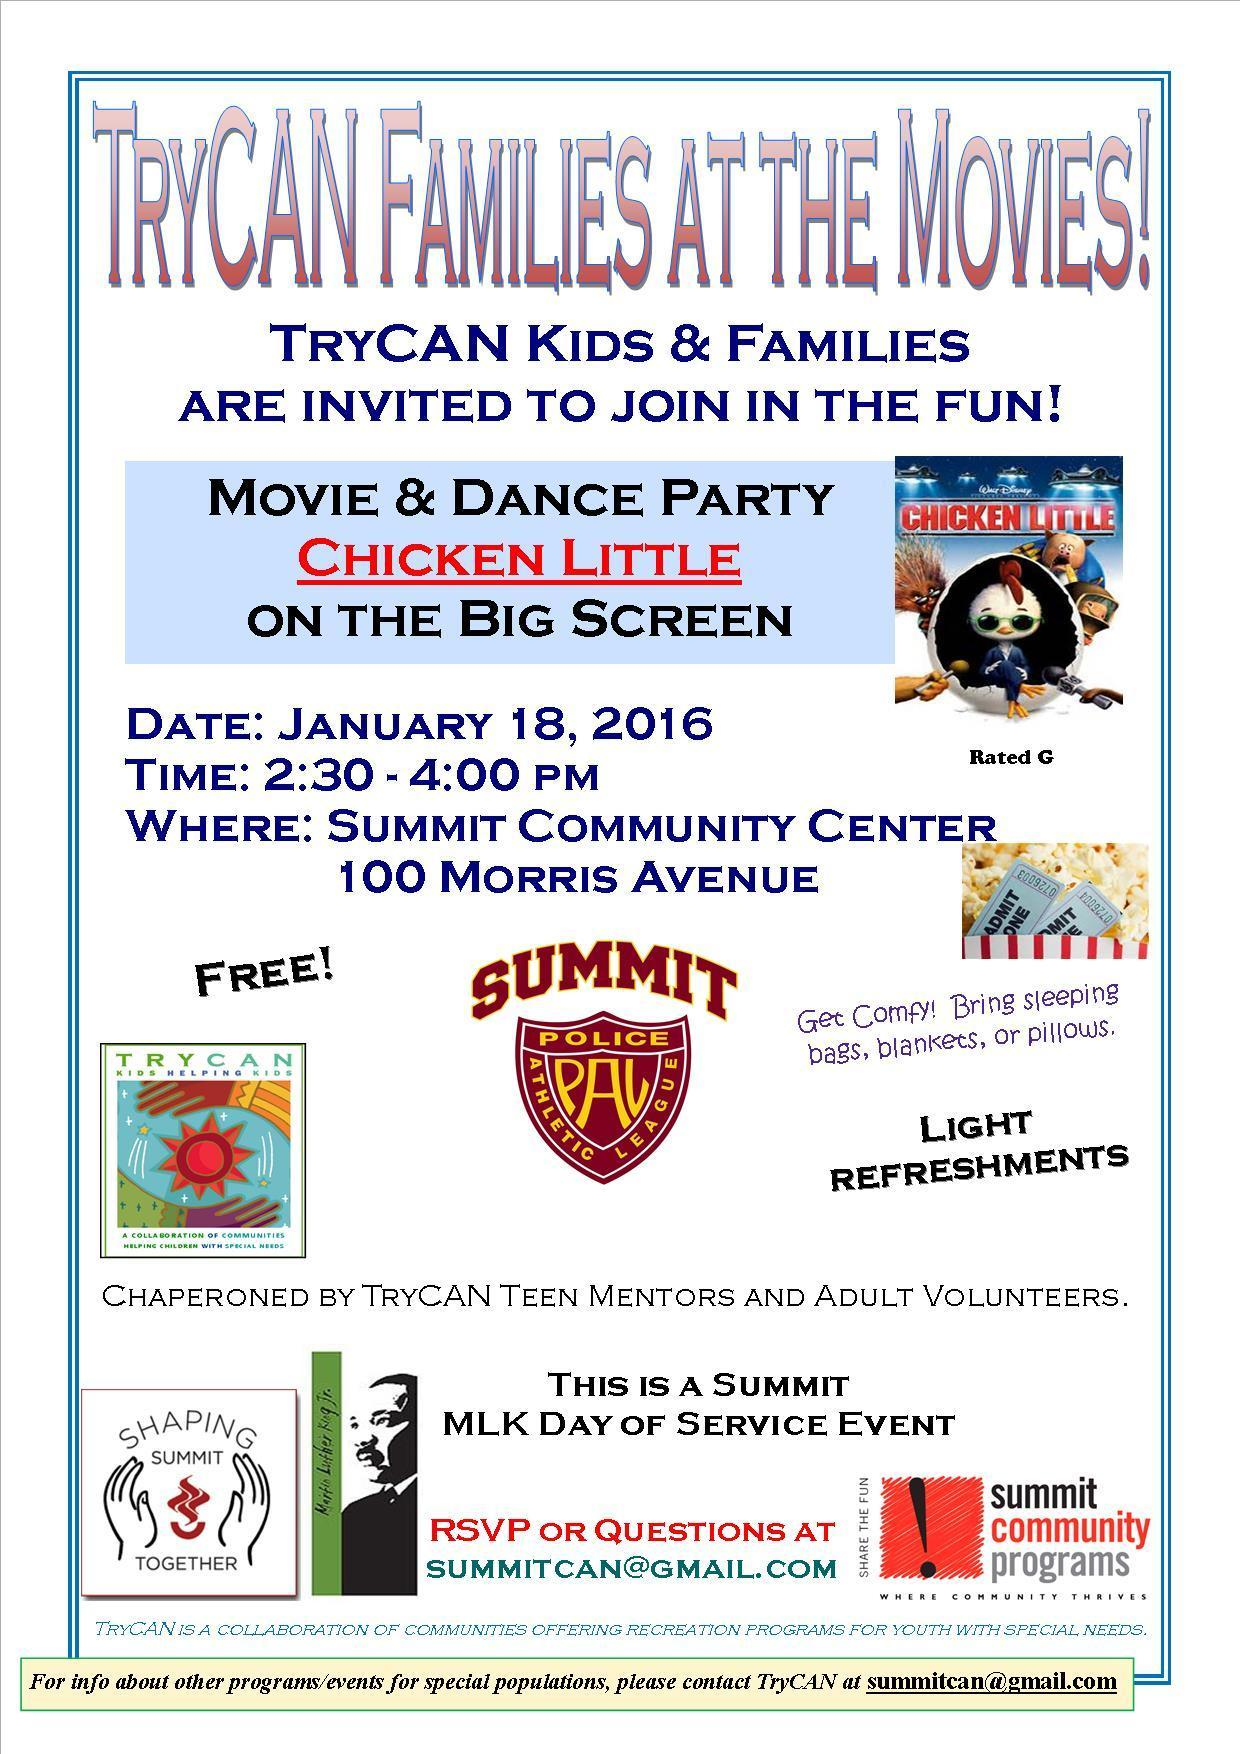 2c4e08b5ee264fbea8b2_MLK_2016_TryCAN_at_the_Movies_flyer.jpg